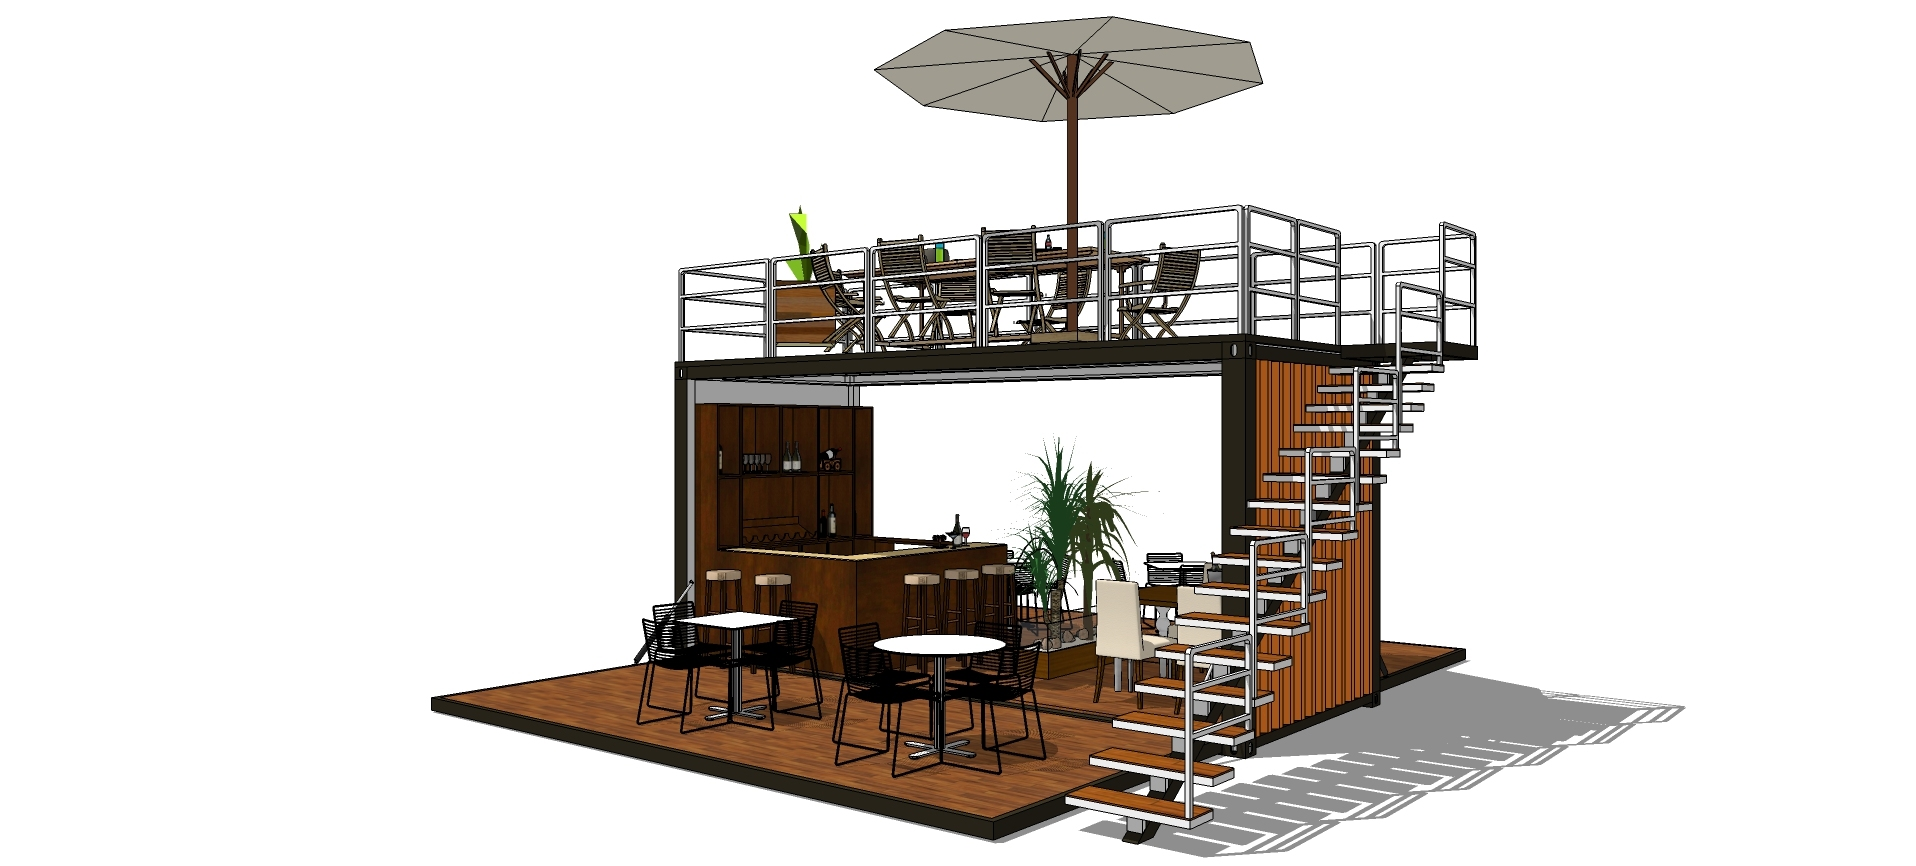 Free Design Shipping Container Cafe Food Kiosk Booth Container Coffee Shop Movable Bar View Shipping Container Cafe Courageous Product Details From Chengdu Keruijiesi Technology Co Ltd On Alibaba Com